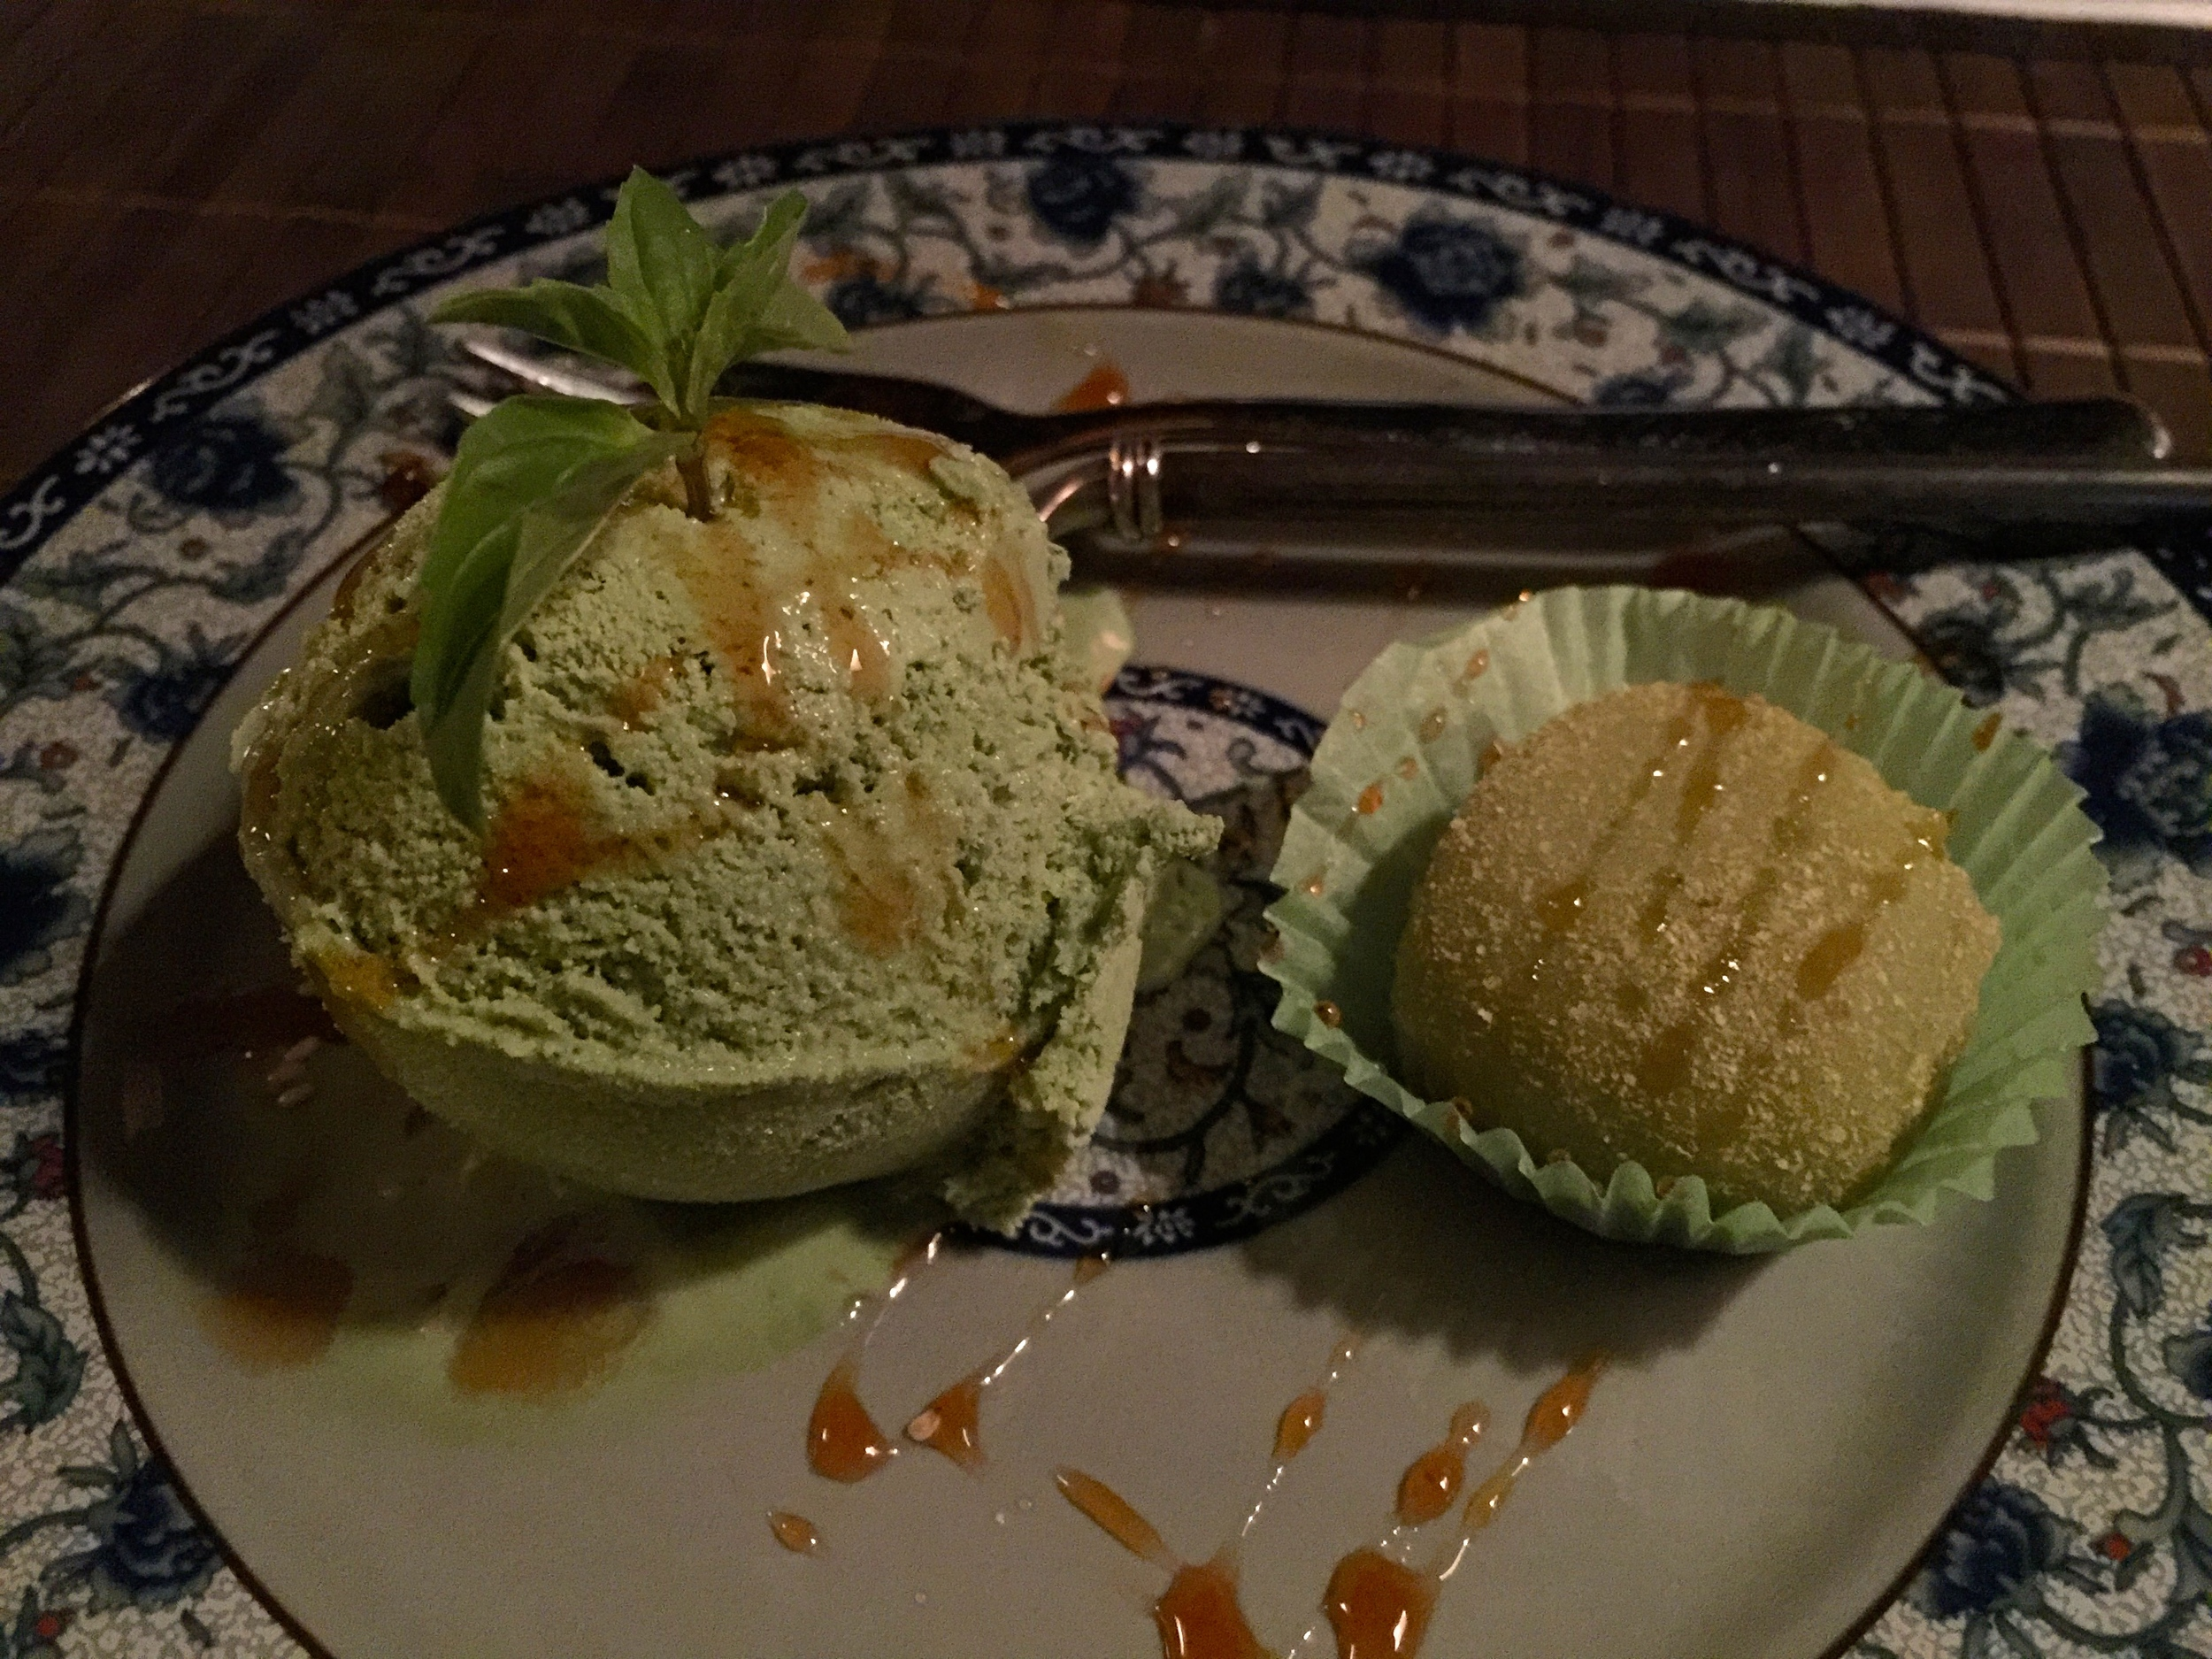 Green tea ice cream with a mochi cake